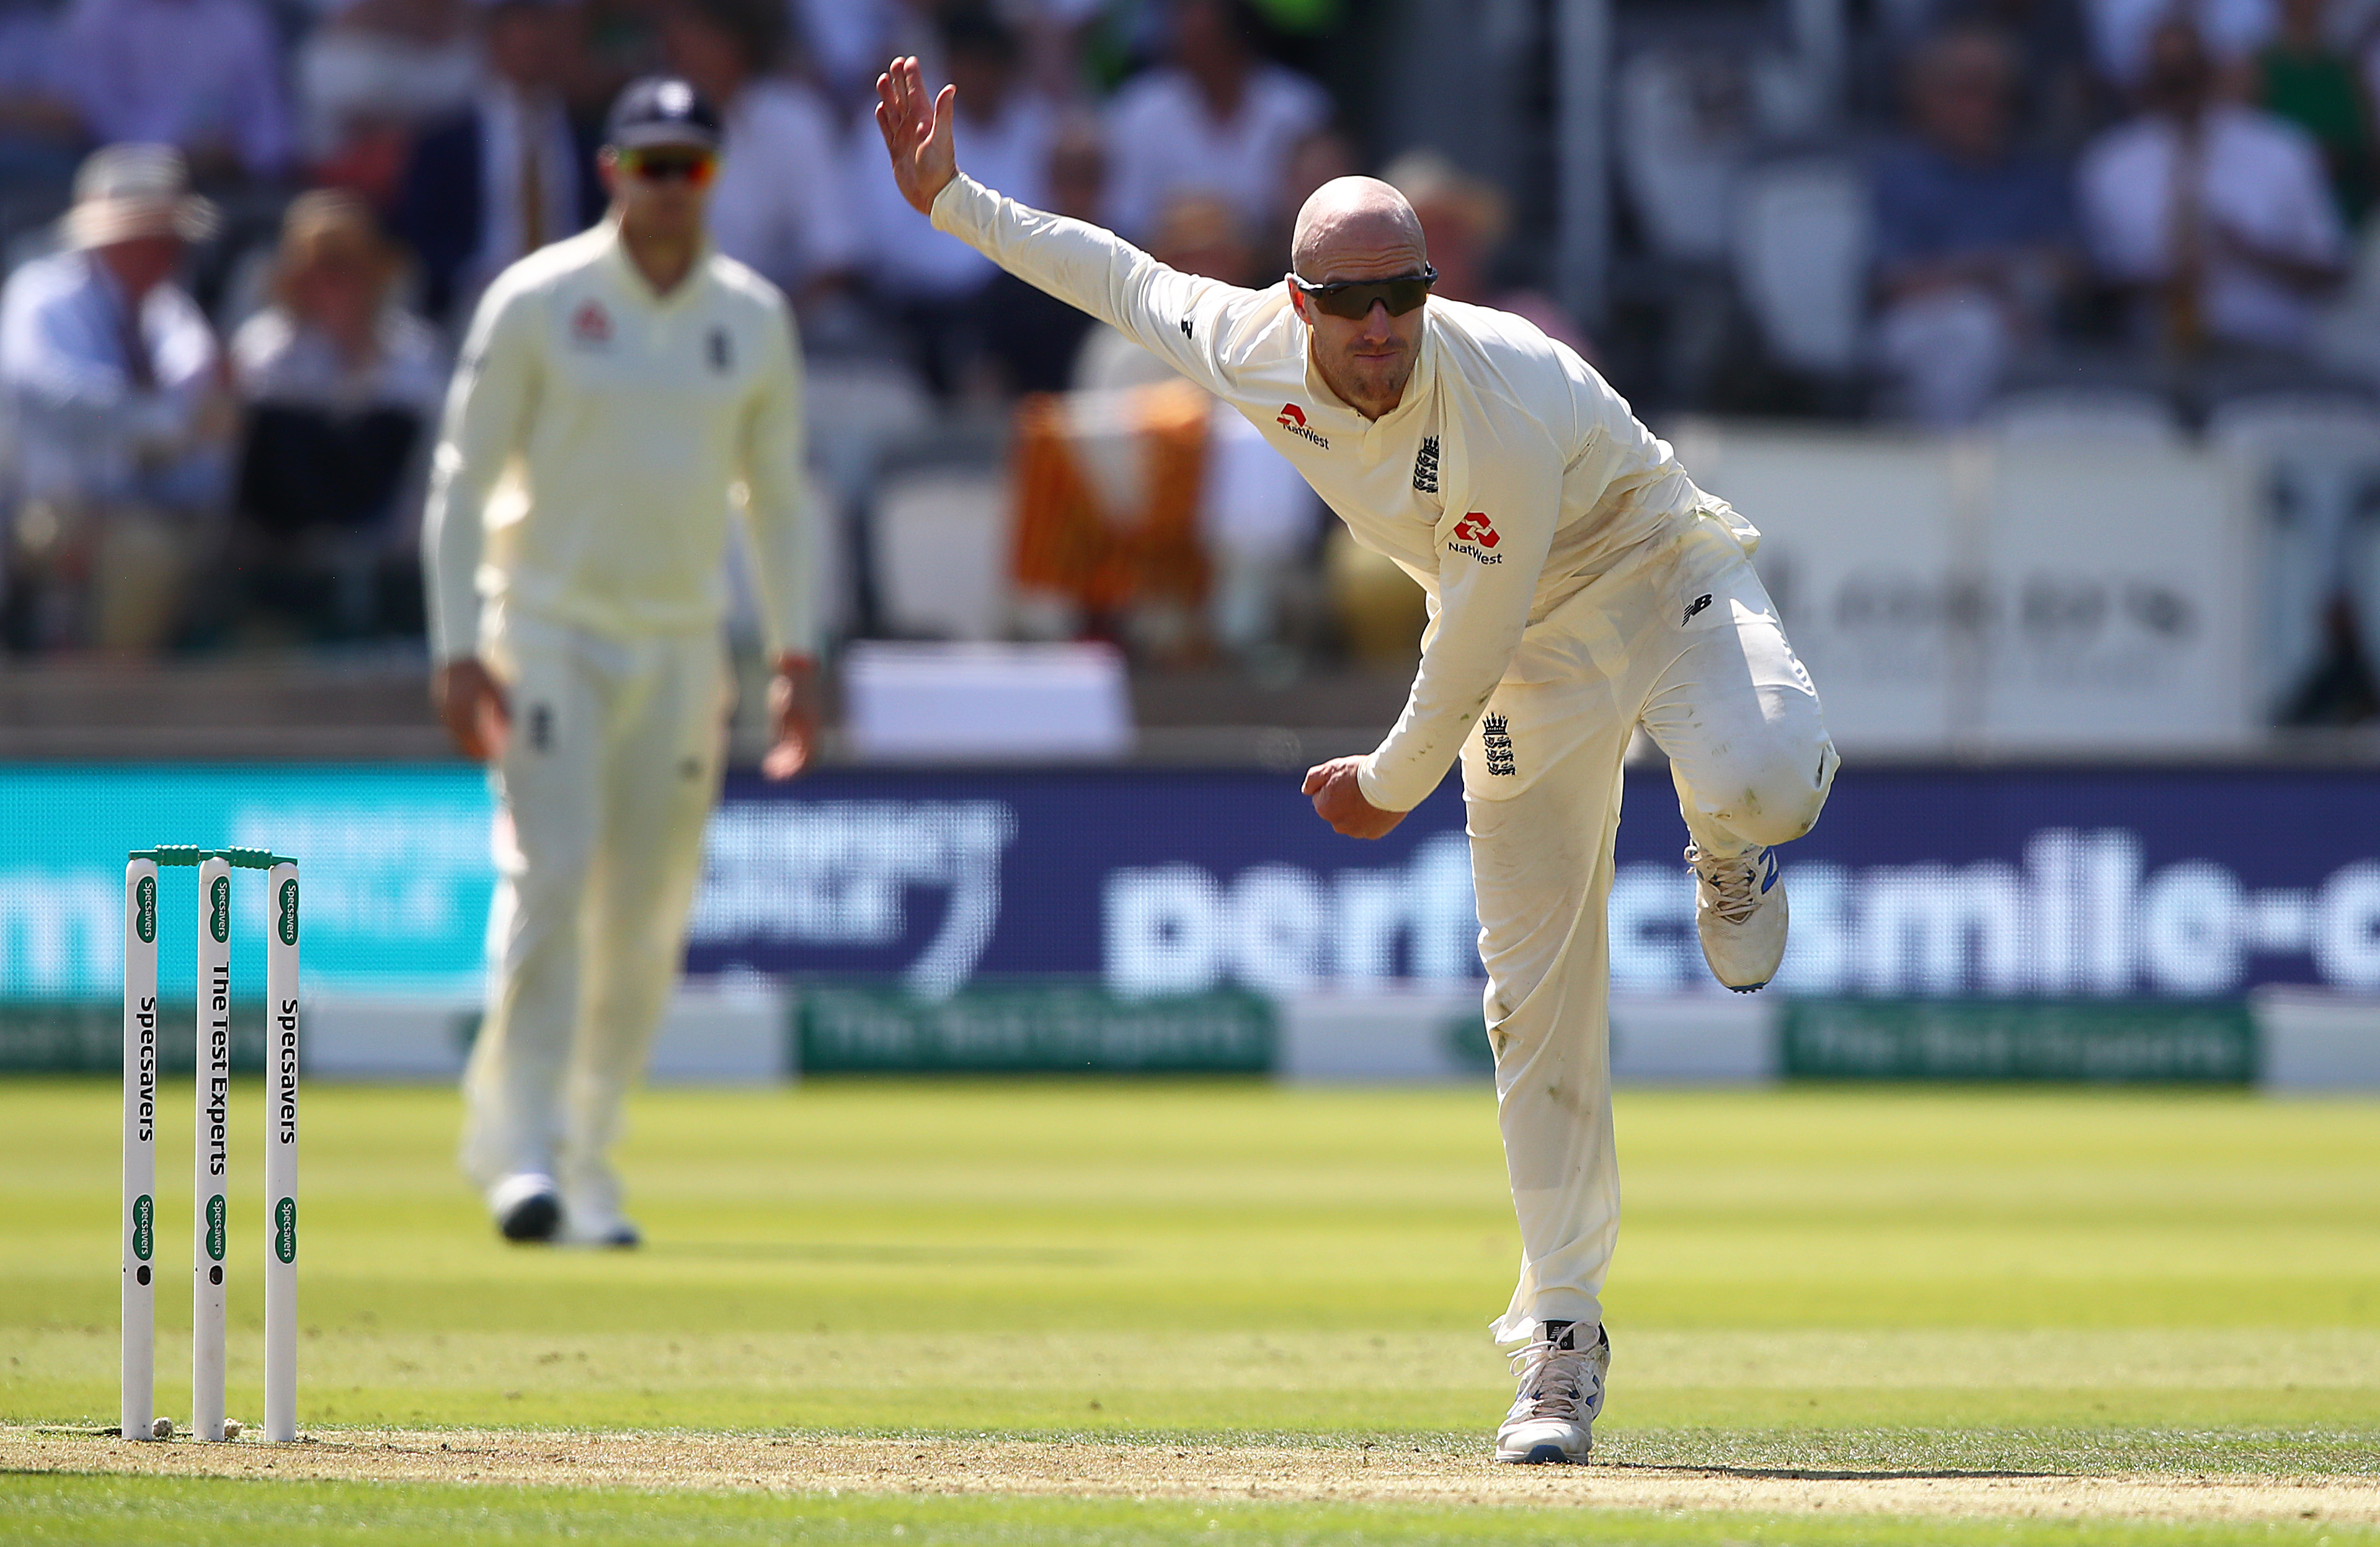 England news Moeen Ali dropped for second Ashes Test as England announce squad 09 Aug 19 - International Cricket Council thumbnail